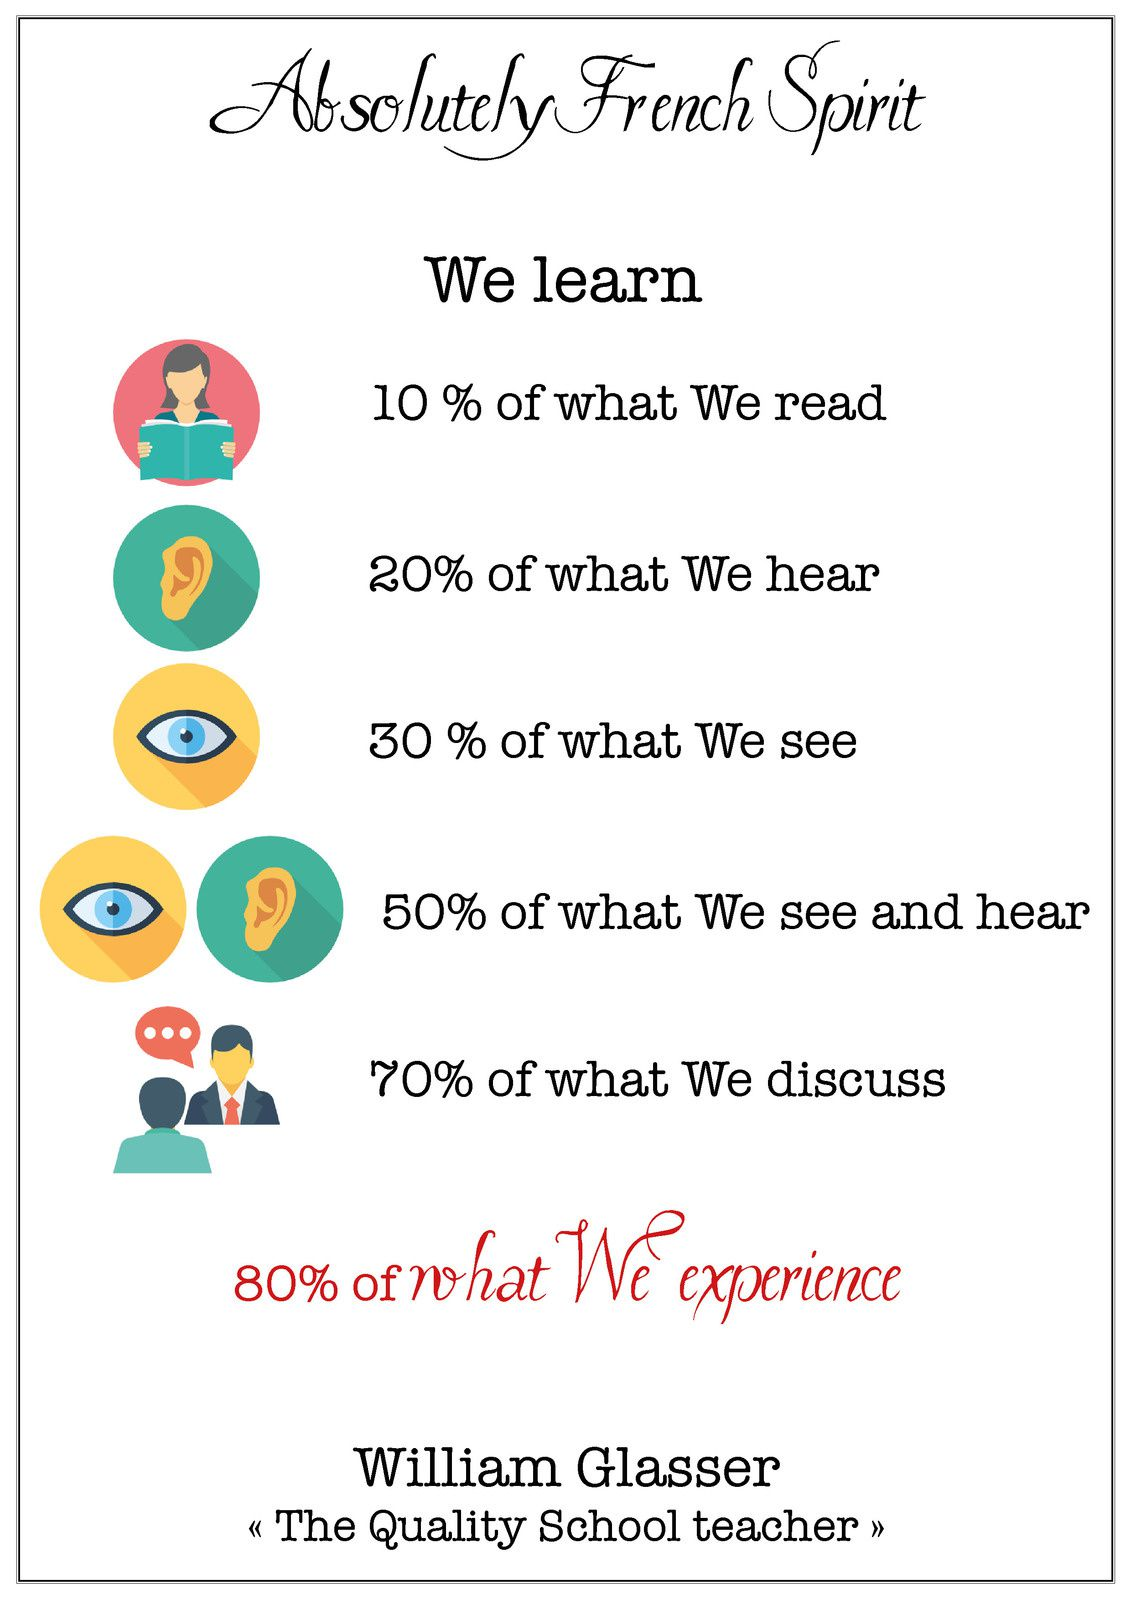 learning by doing, memorization, learn, how to learn better, levels of learning, learn better, study, best way to learn, william glasser, quality school